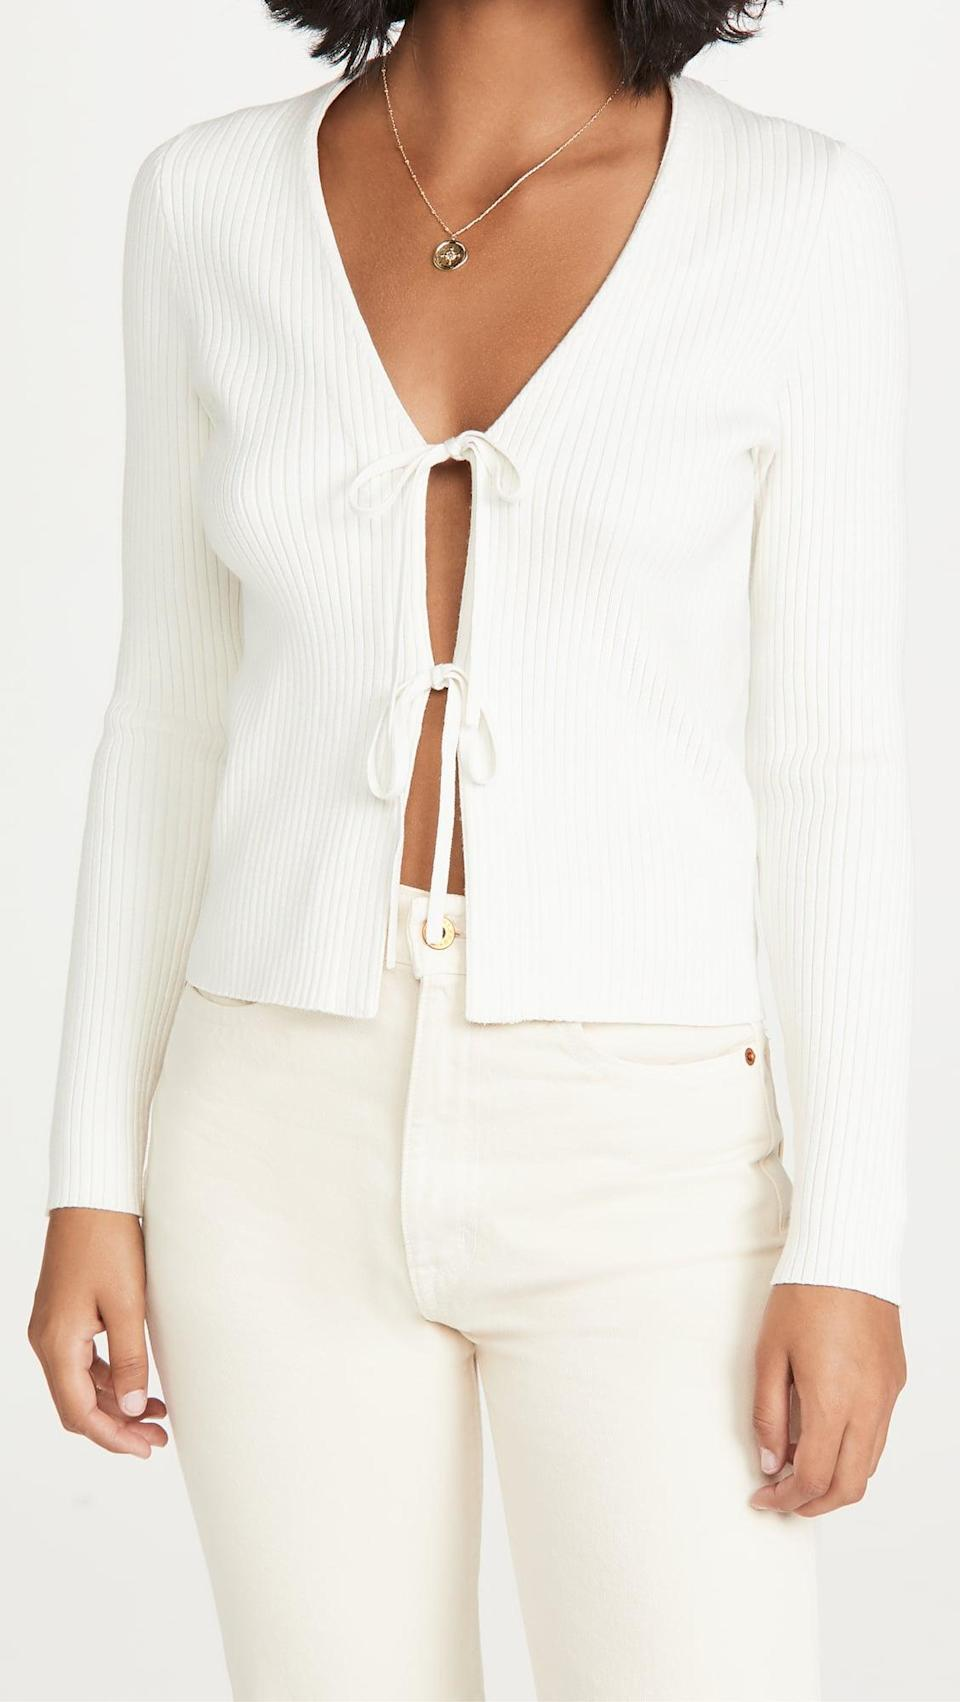 <p>This <span>Madewell Jillian Tie Cardigan</span> ($90) is a sexy choice for date night.</p>